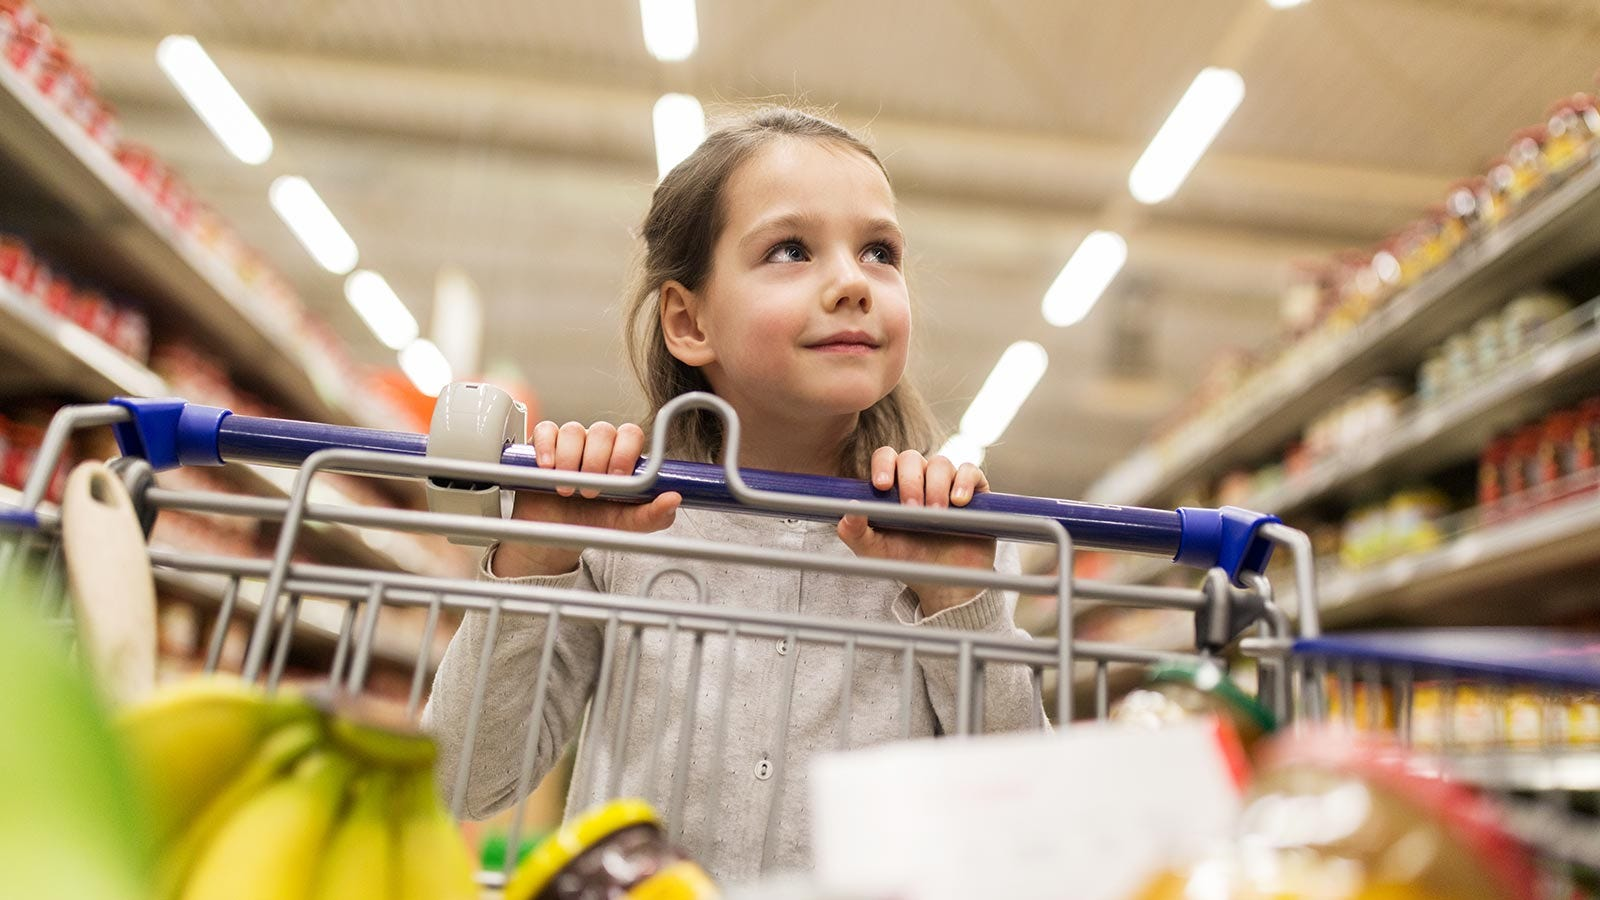 A young girl pushing a grocery cart in a store.